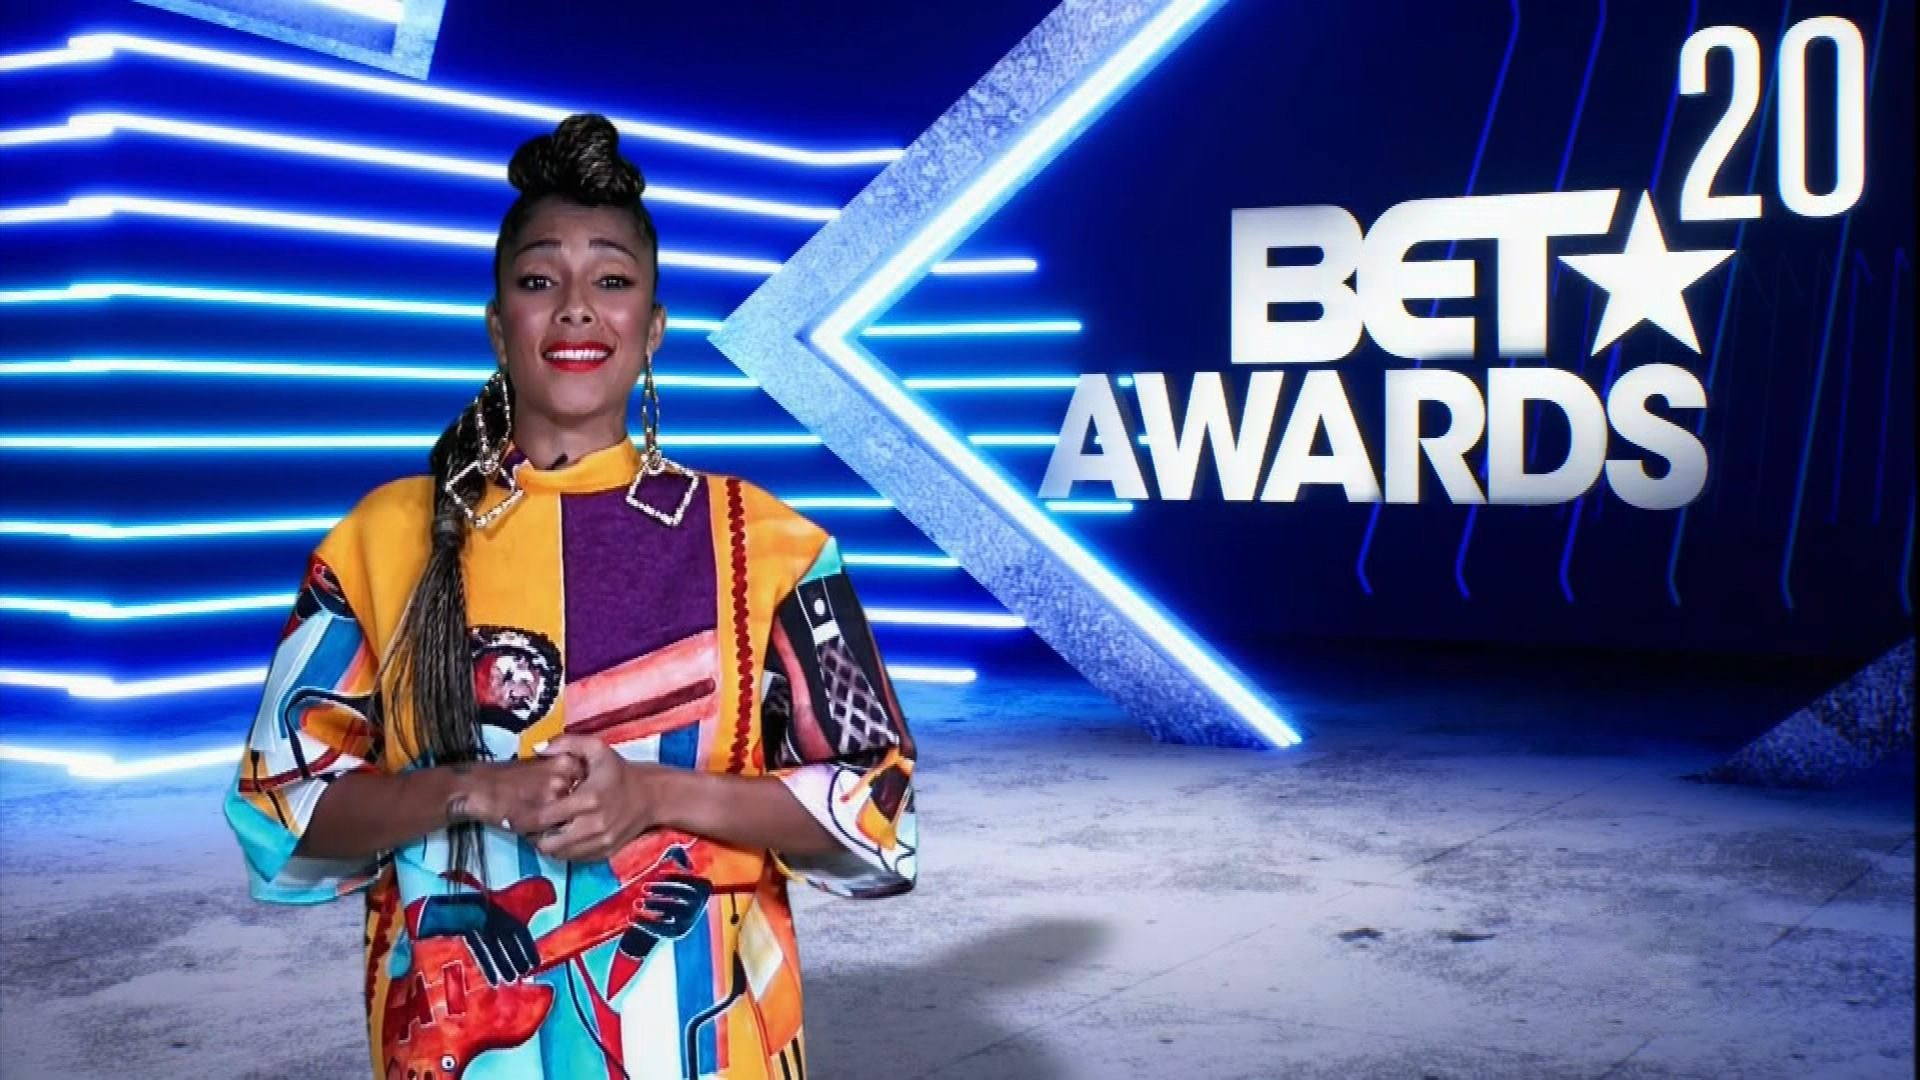 bet awards live on mobile